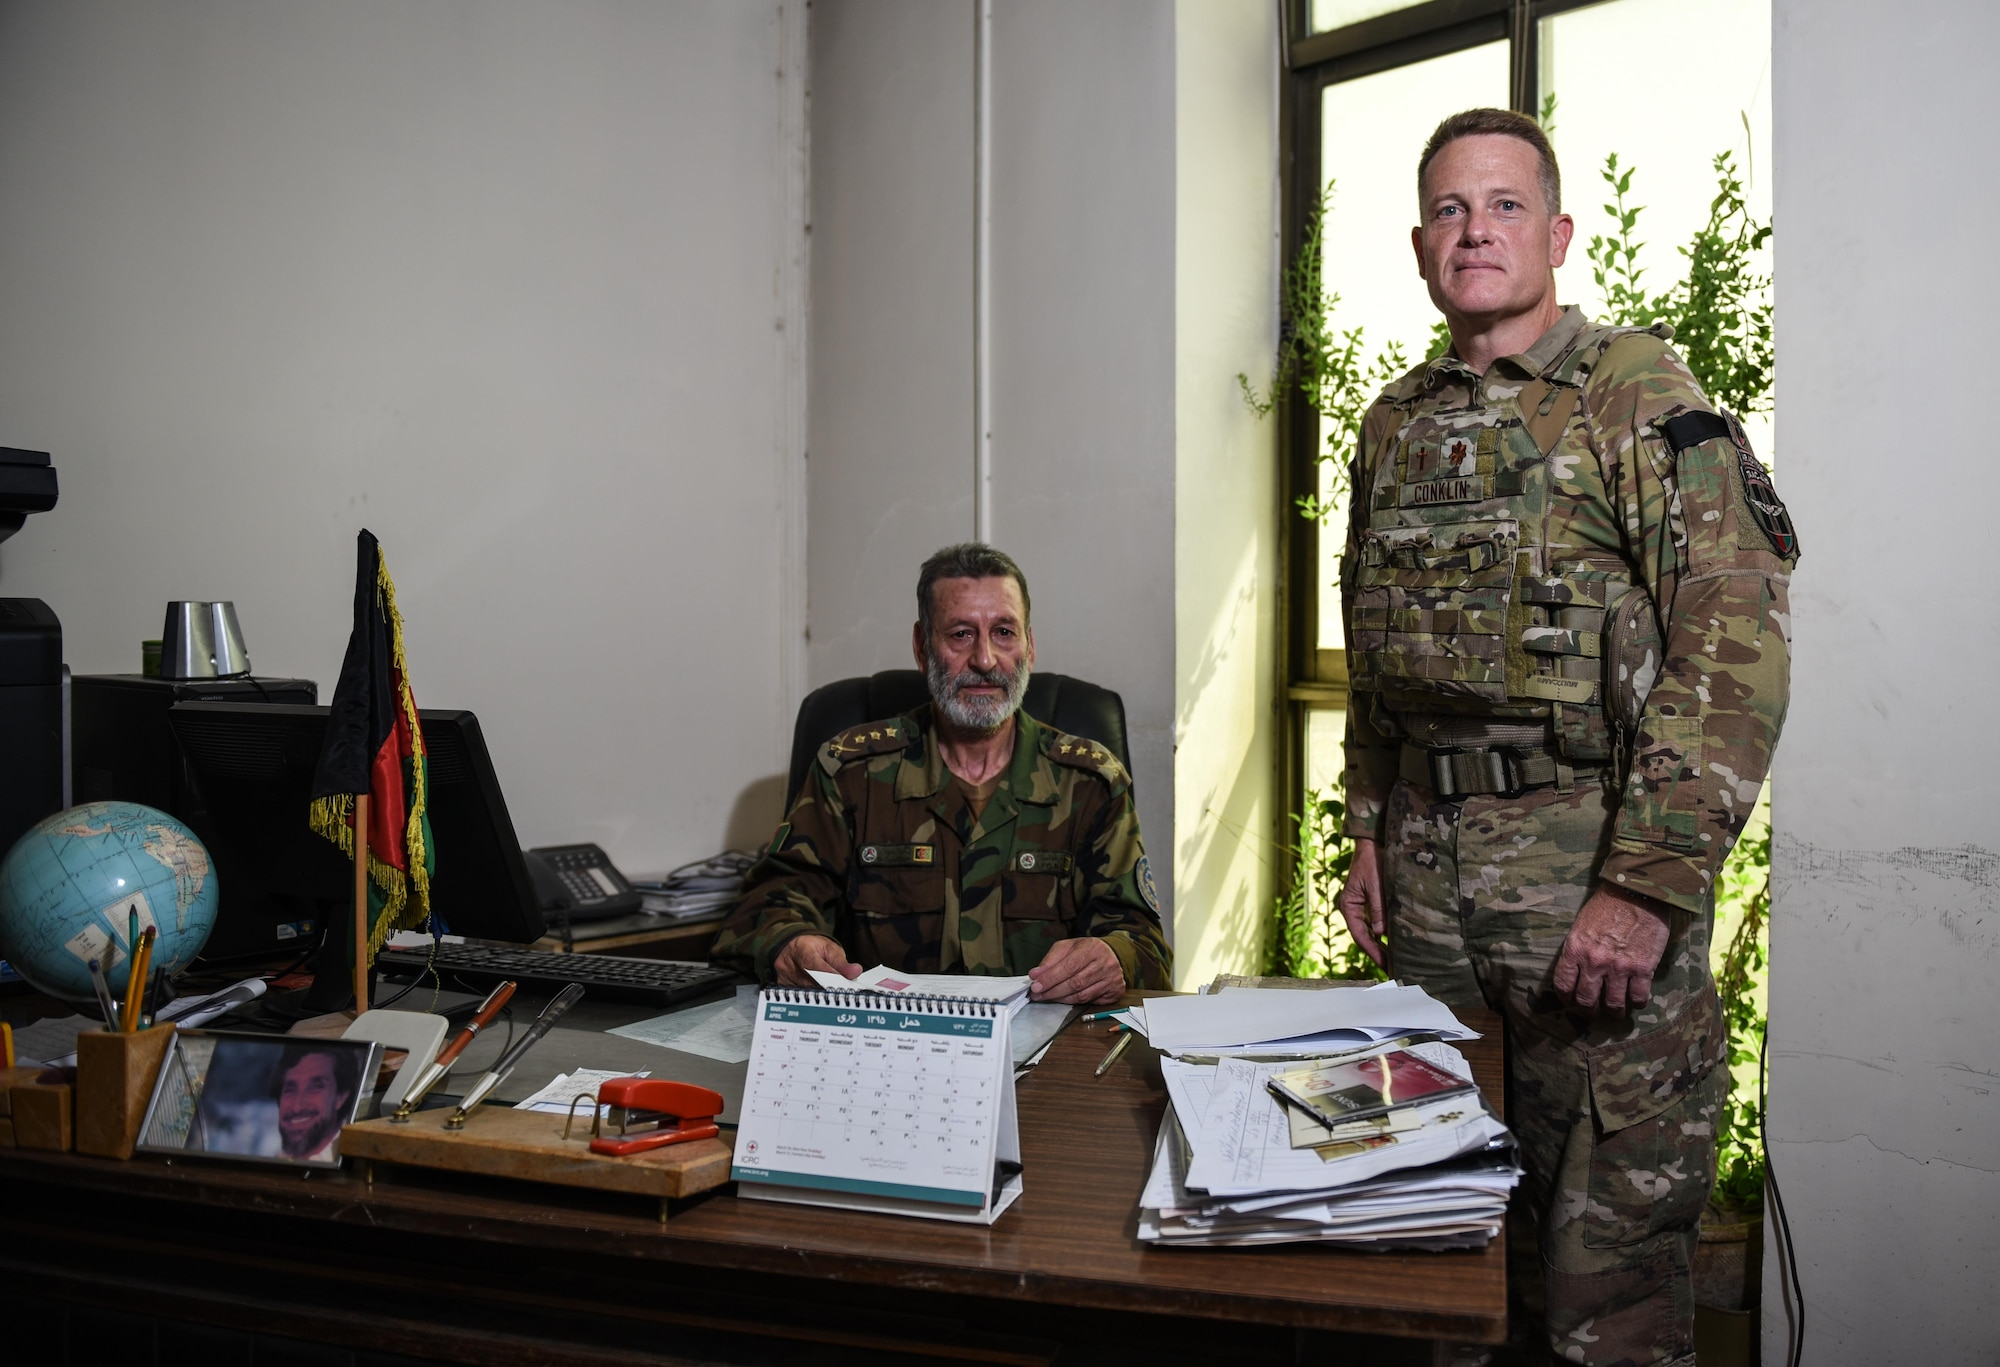 Chaplain (Maj.) Chris Conklin, Train, Advise, Assist Command-Air air advisor, (right) stands next to Afghan National Army Col. Abdul Basir, the head of the Afghan Air Force Religious and Cultural Affairs office, Sept.14, 2017, in Kabul, Afghanistan. Conklin provides training, assistance and advice on the organization of religious support in the developing AAF as the first air advisor chaplain in TAAC-Air. (U.S. Air Force photo by Staff Sgt. Alexander W. Riedel)